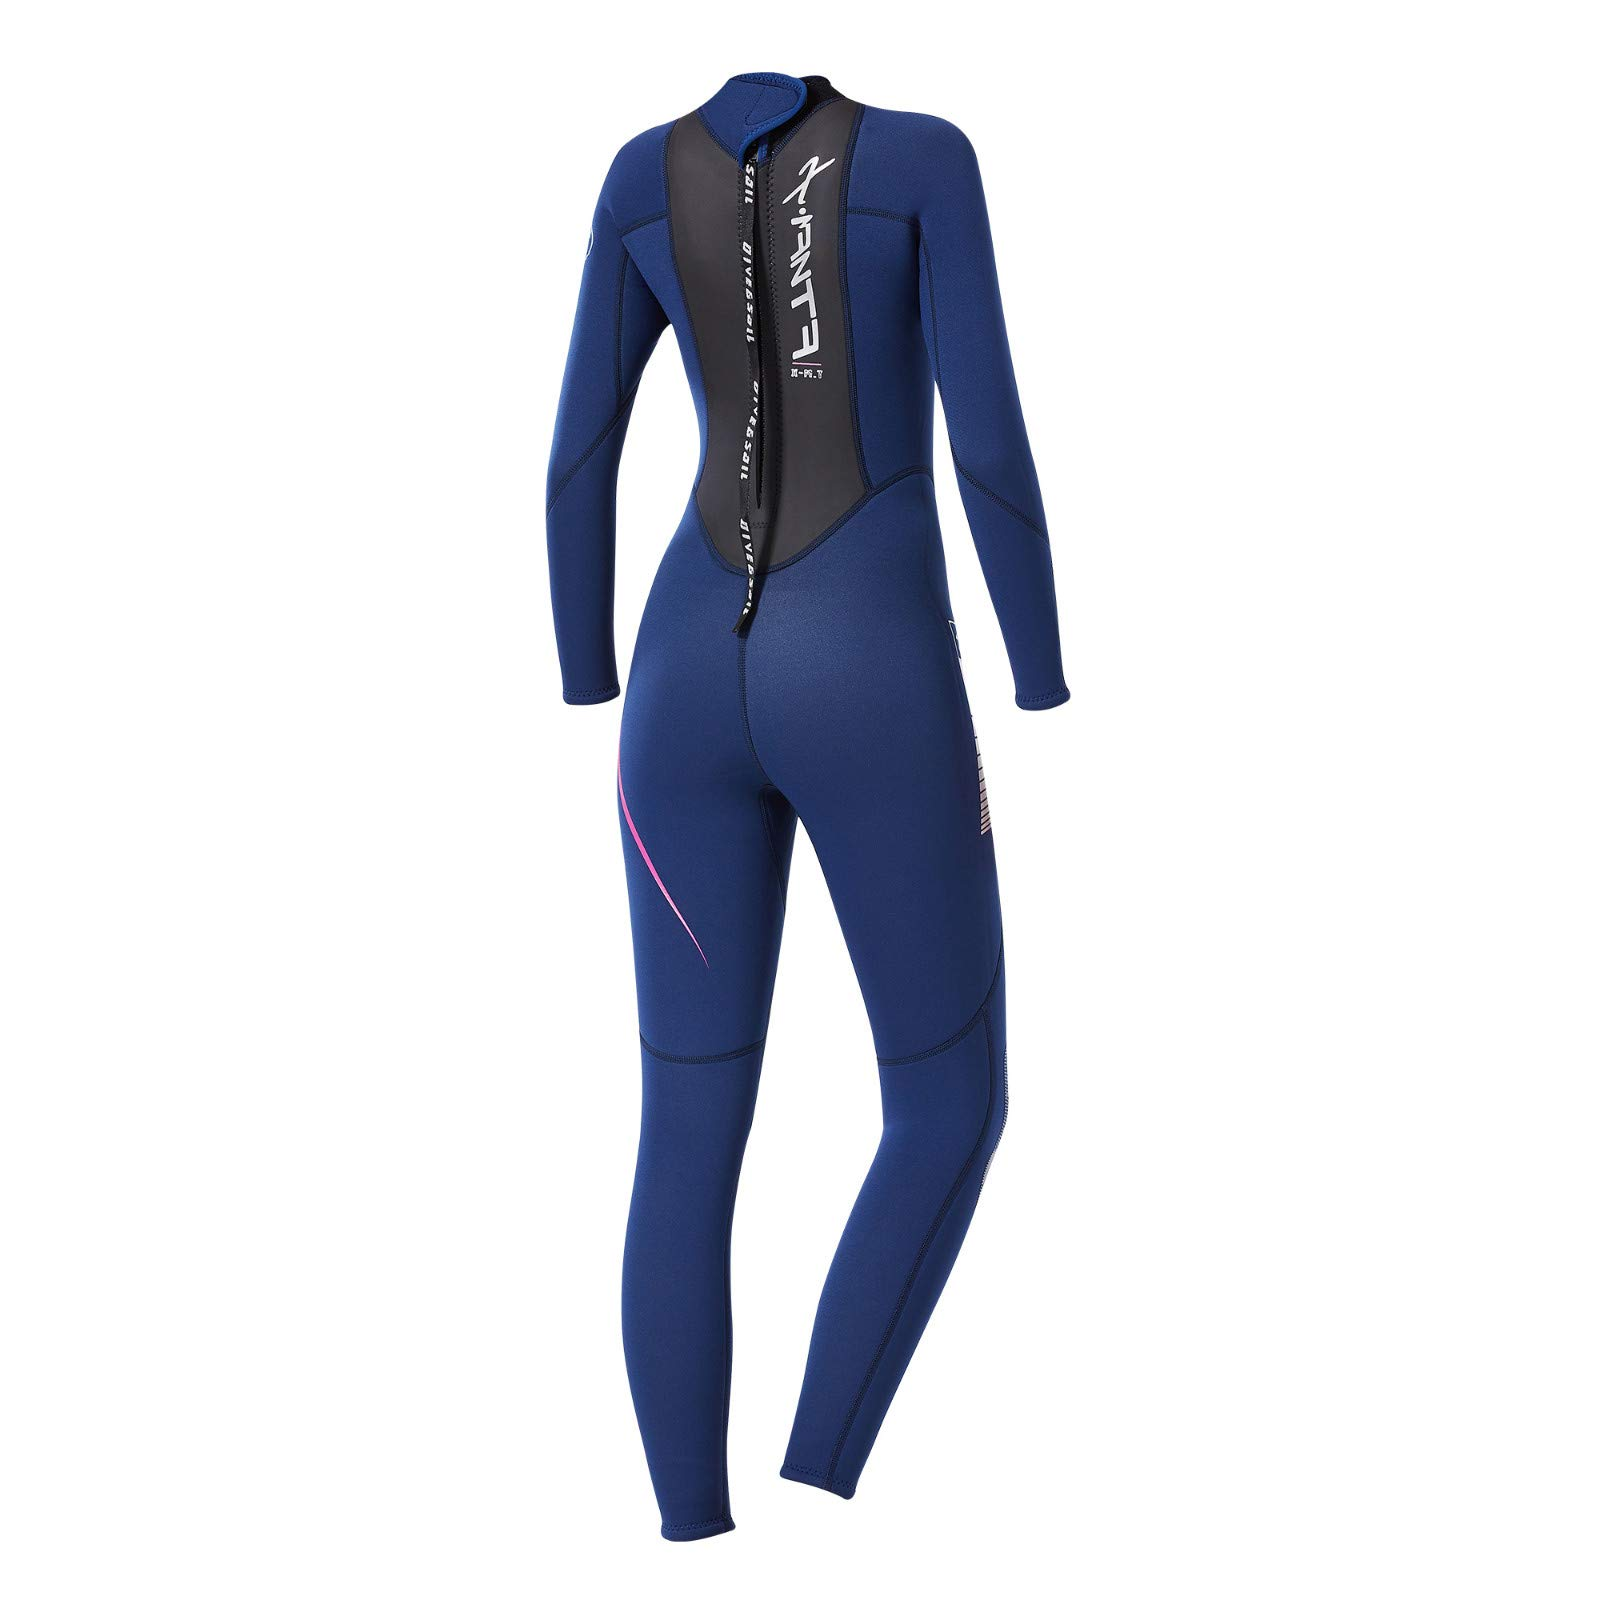 Women's Keep Warm Sunscreen Swimming,Surfing and Snorkeling Diving Coverall Suit by LUXISDE (Image #9)